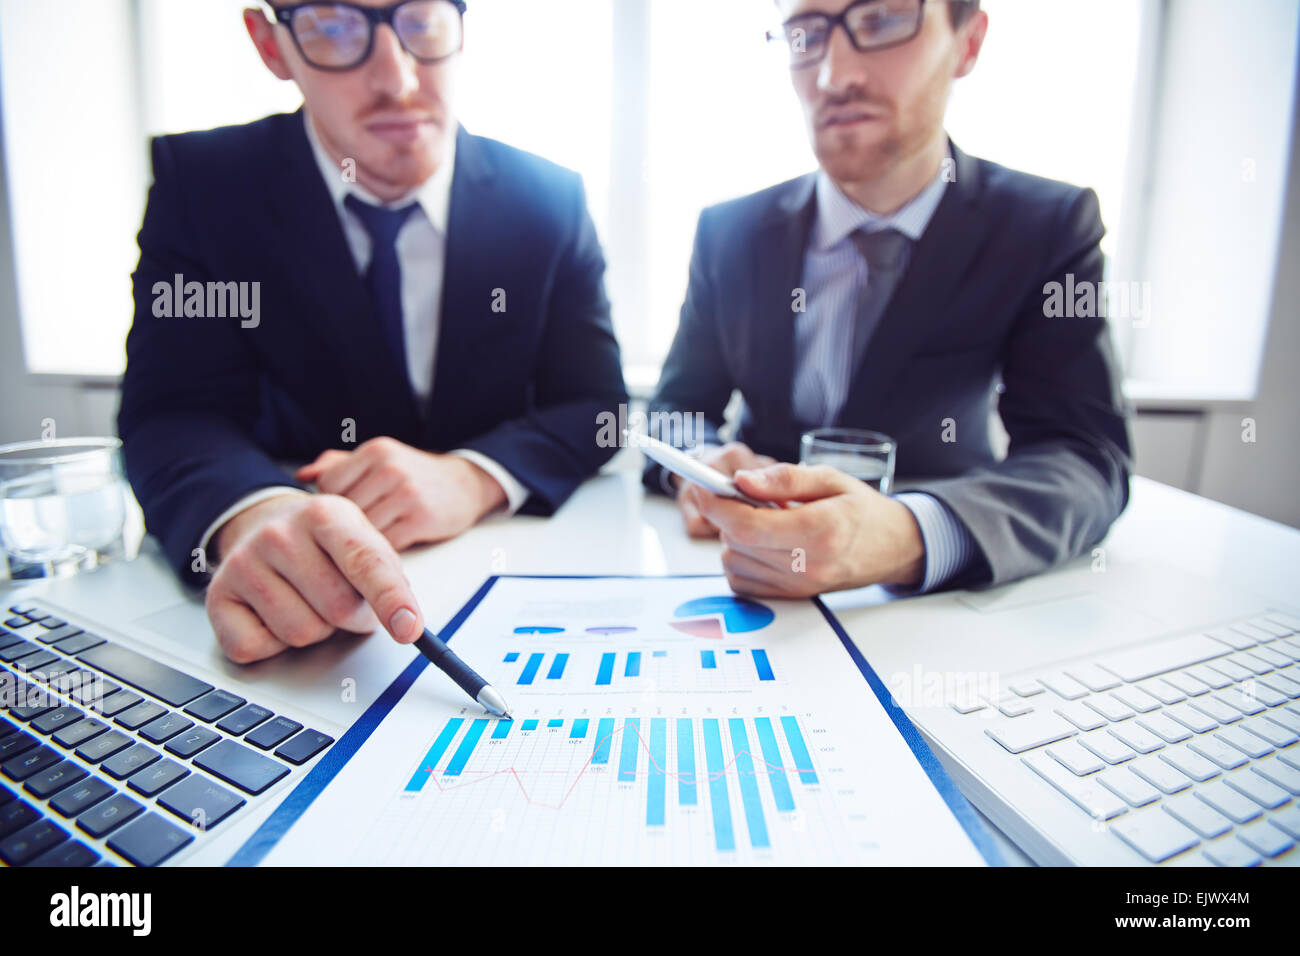 Close-up of businessmen analyzing chart at meeting - Stock Image